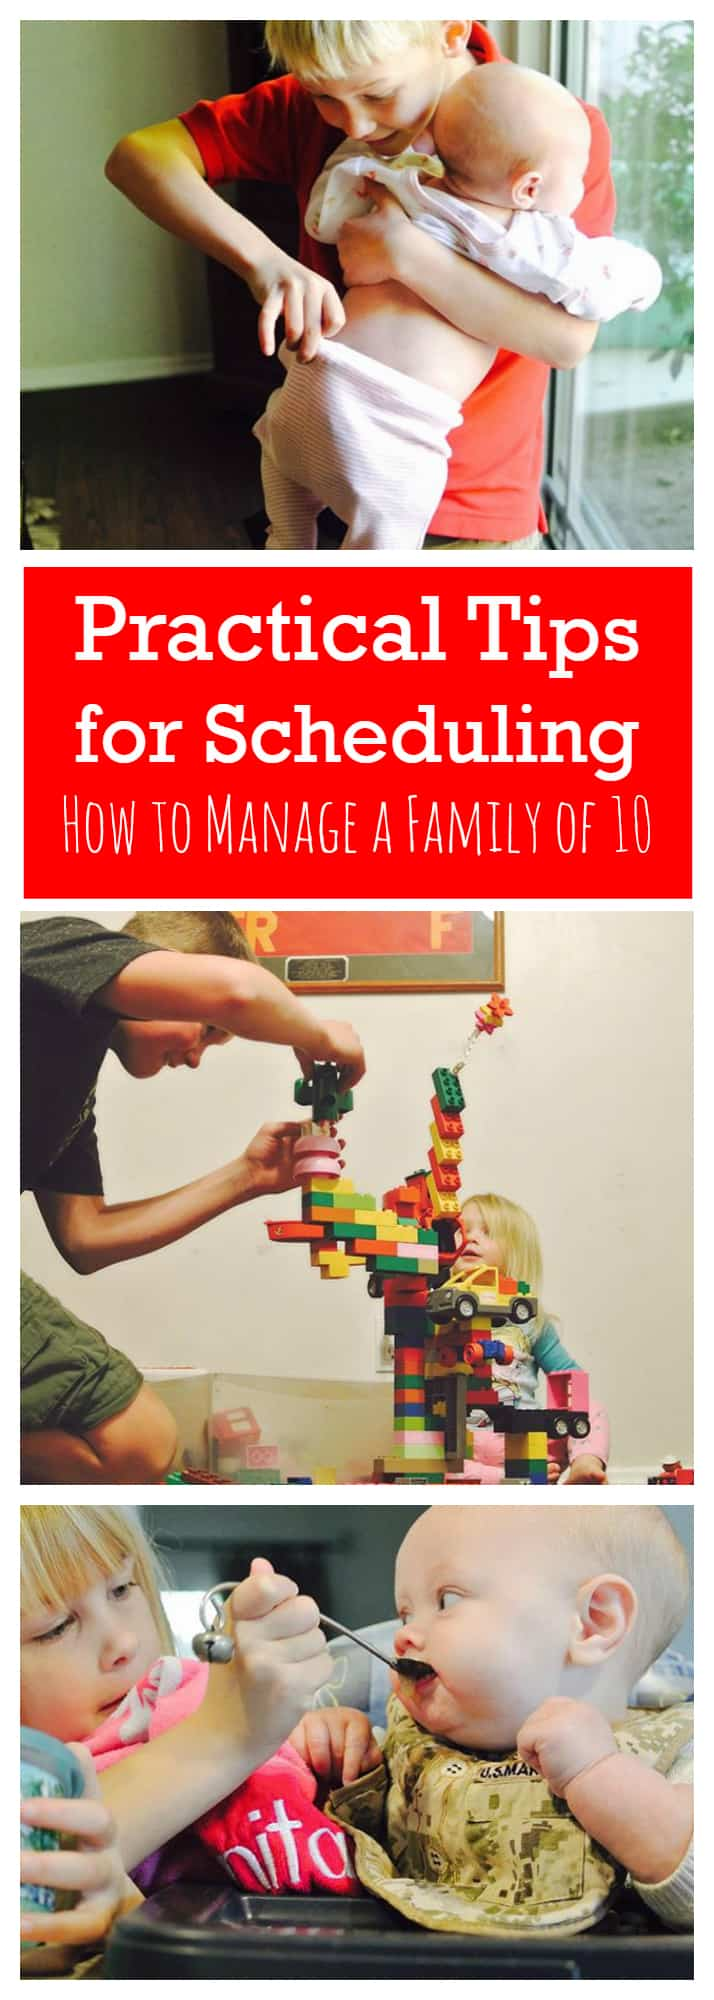 Practical Tips for Scheduling How to Manage a Family of 10 www.startamomblog.com